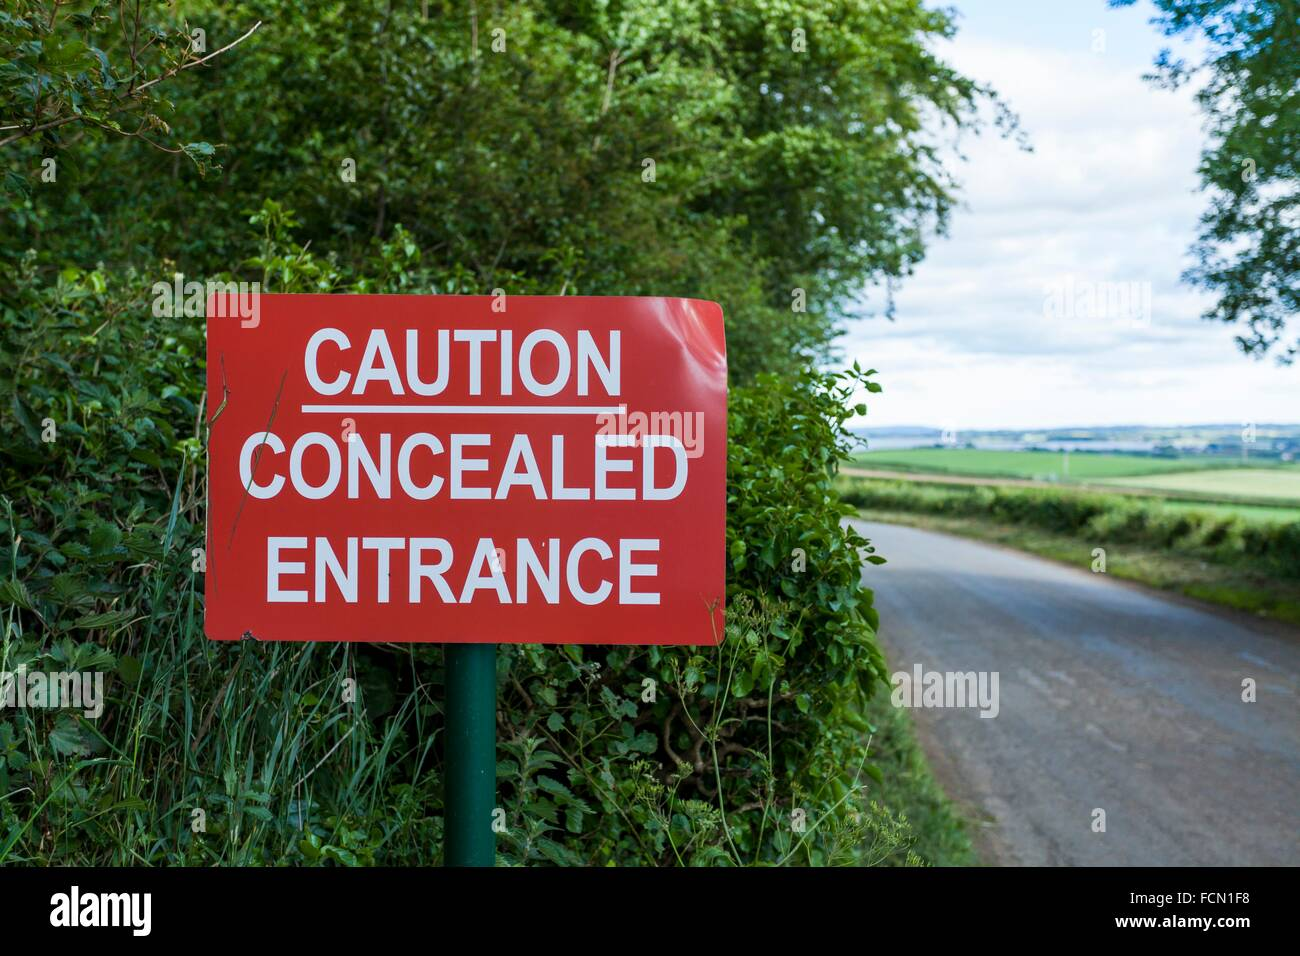 Sign warning of a concealed entrance. Shooting date 22.06.15 - Stock Image